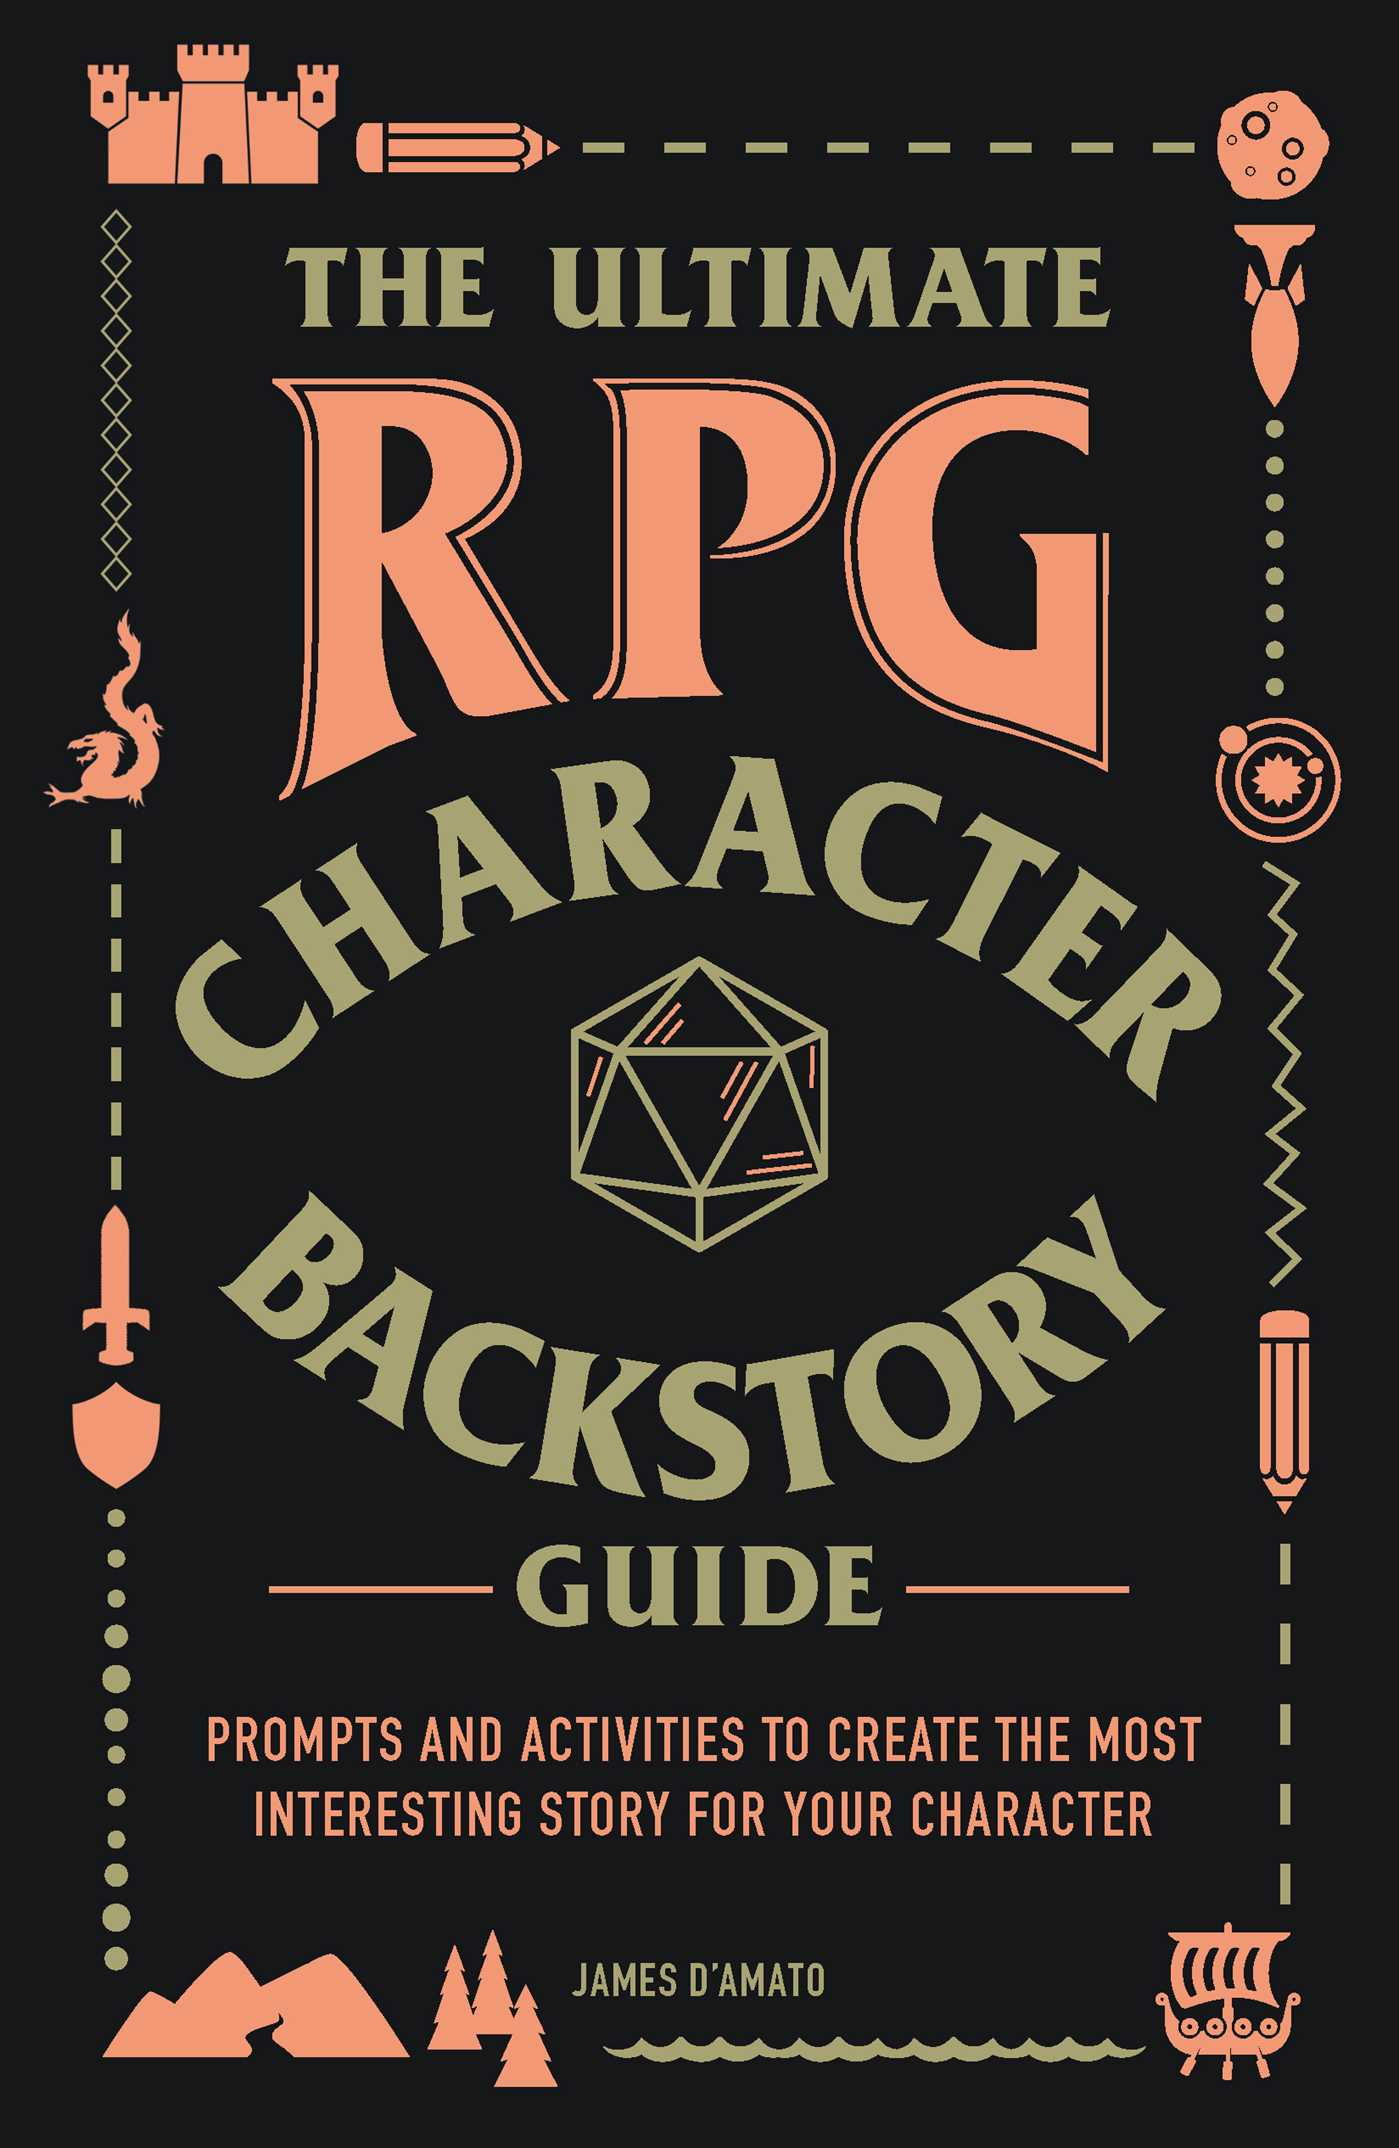 The ultimate rpg character backstory guide 9781507208380 hr